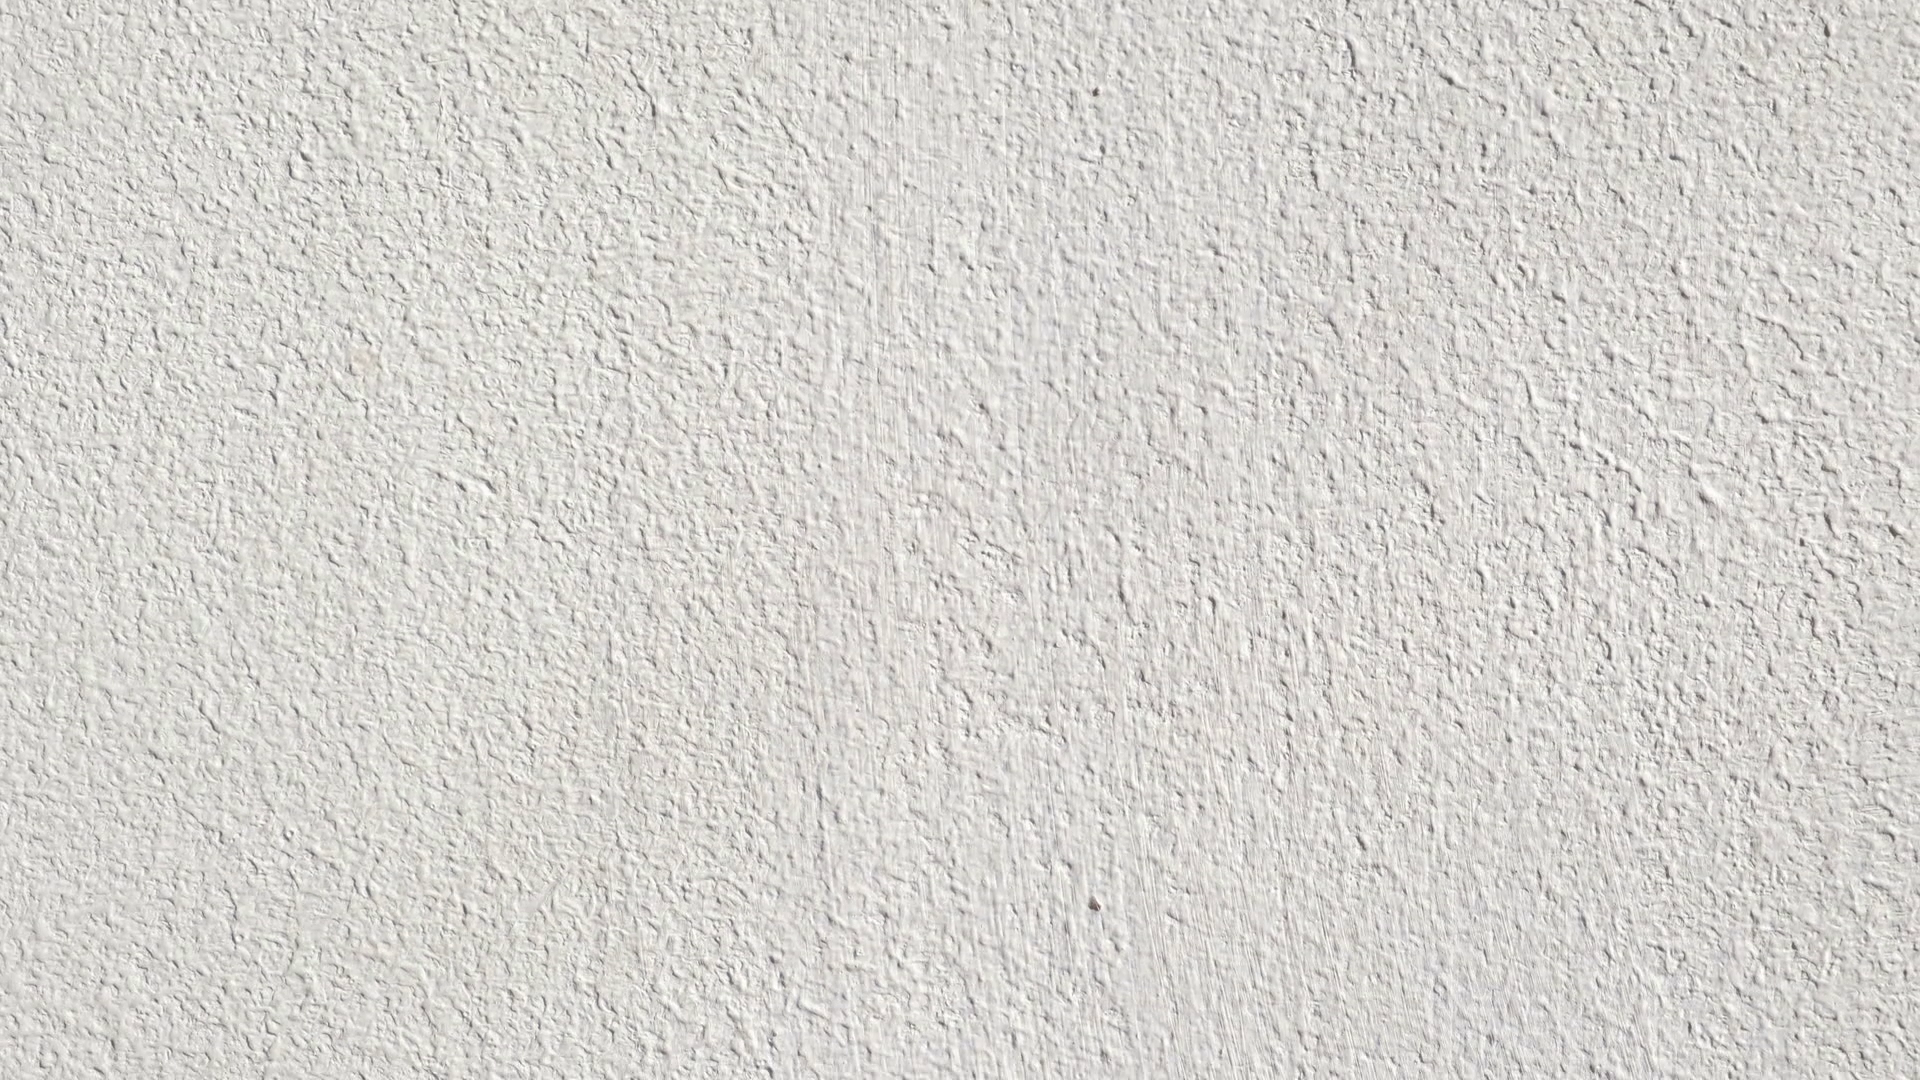 White wall texture with plaster. Stock Video Footage - Videoblocks